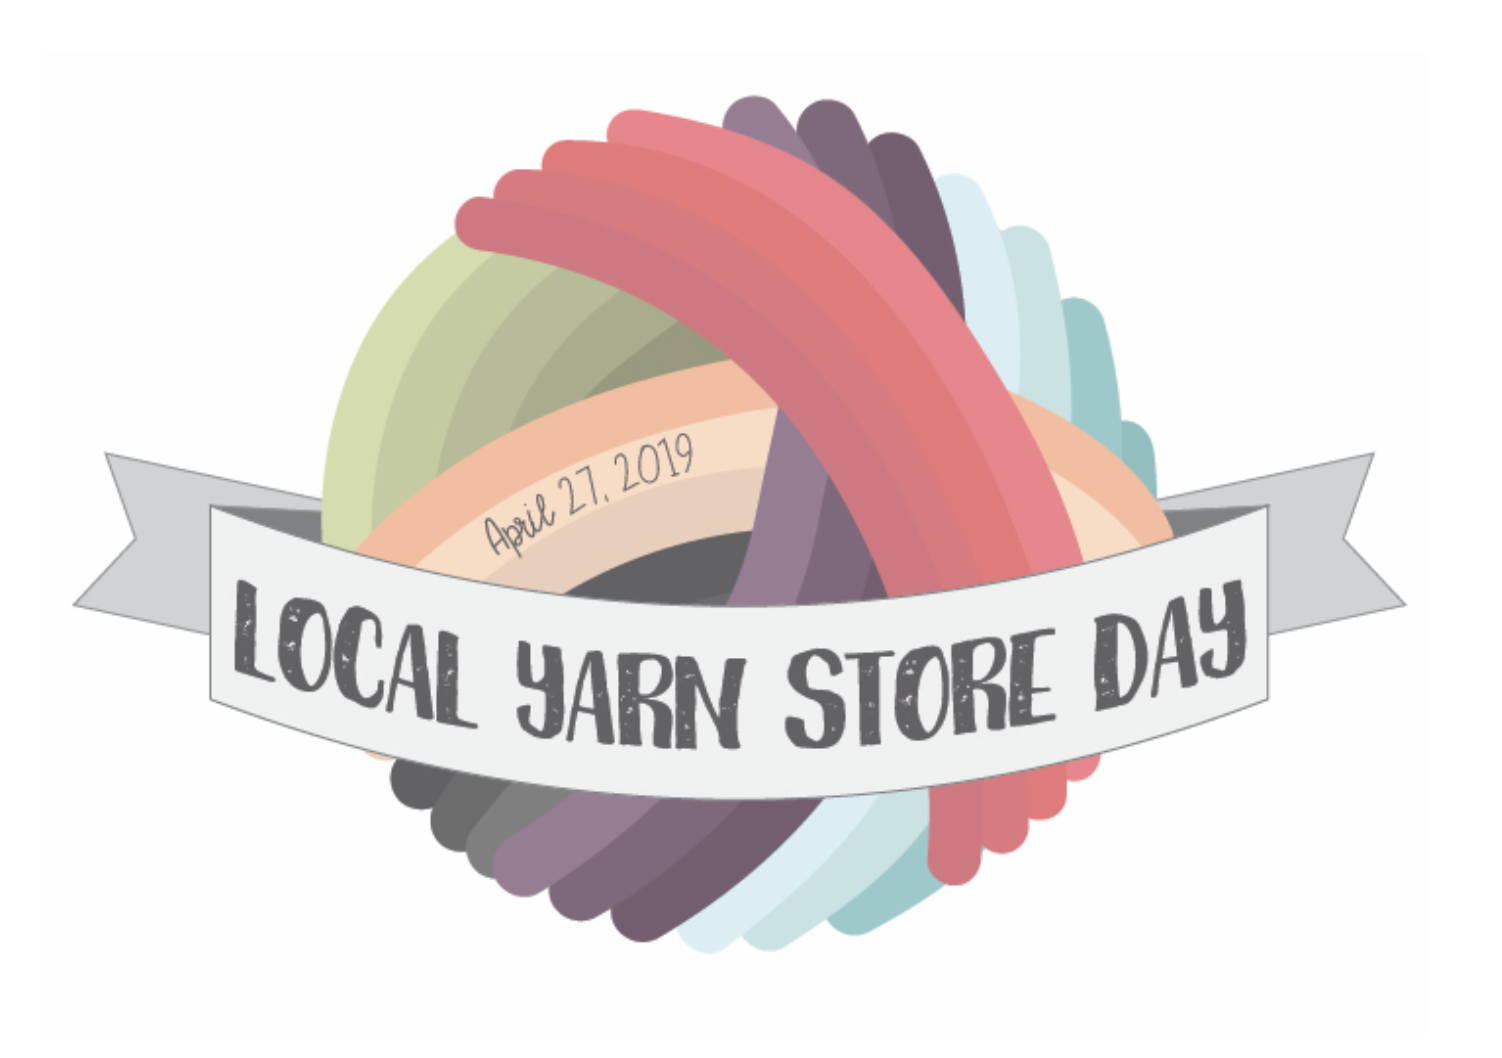 local yarn store day #LYSday